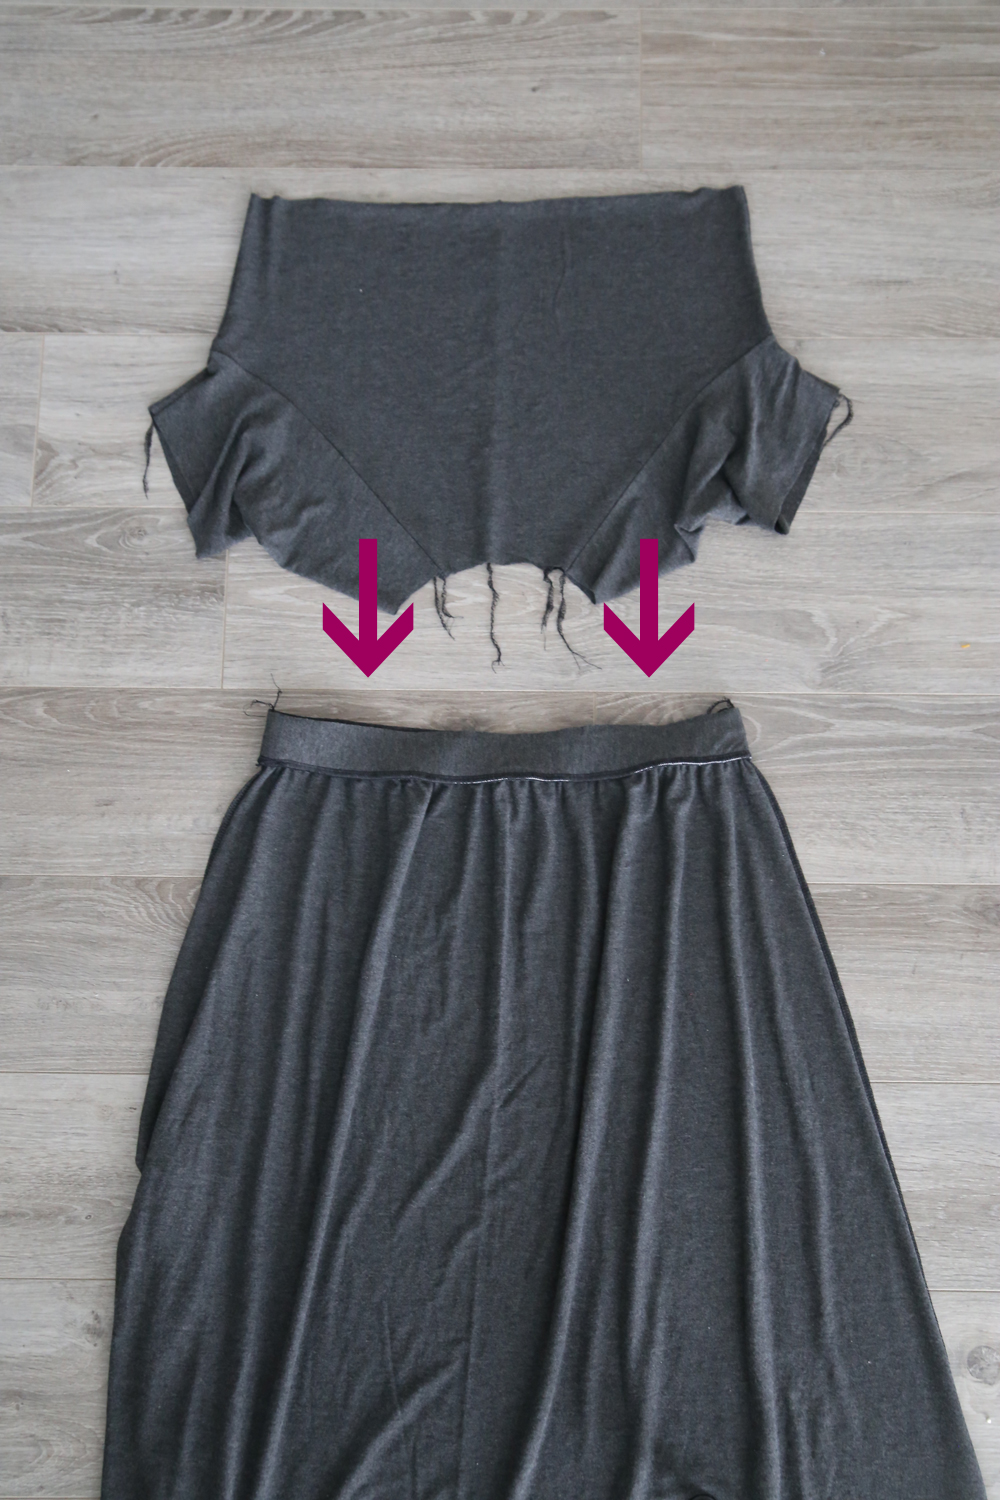 Bodice piece with arrows showing it goes inside skirt piece